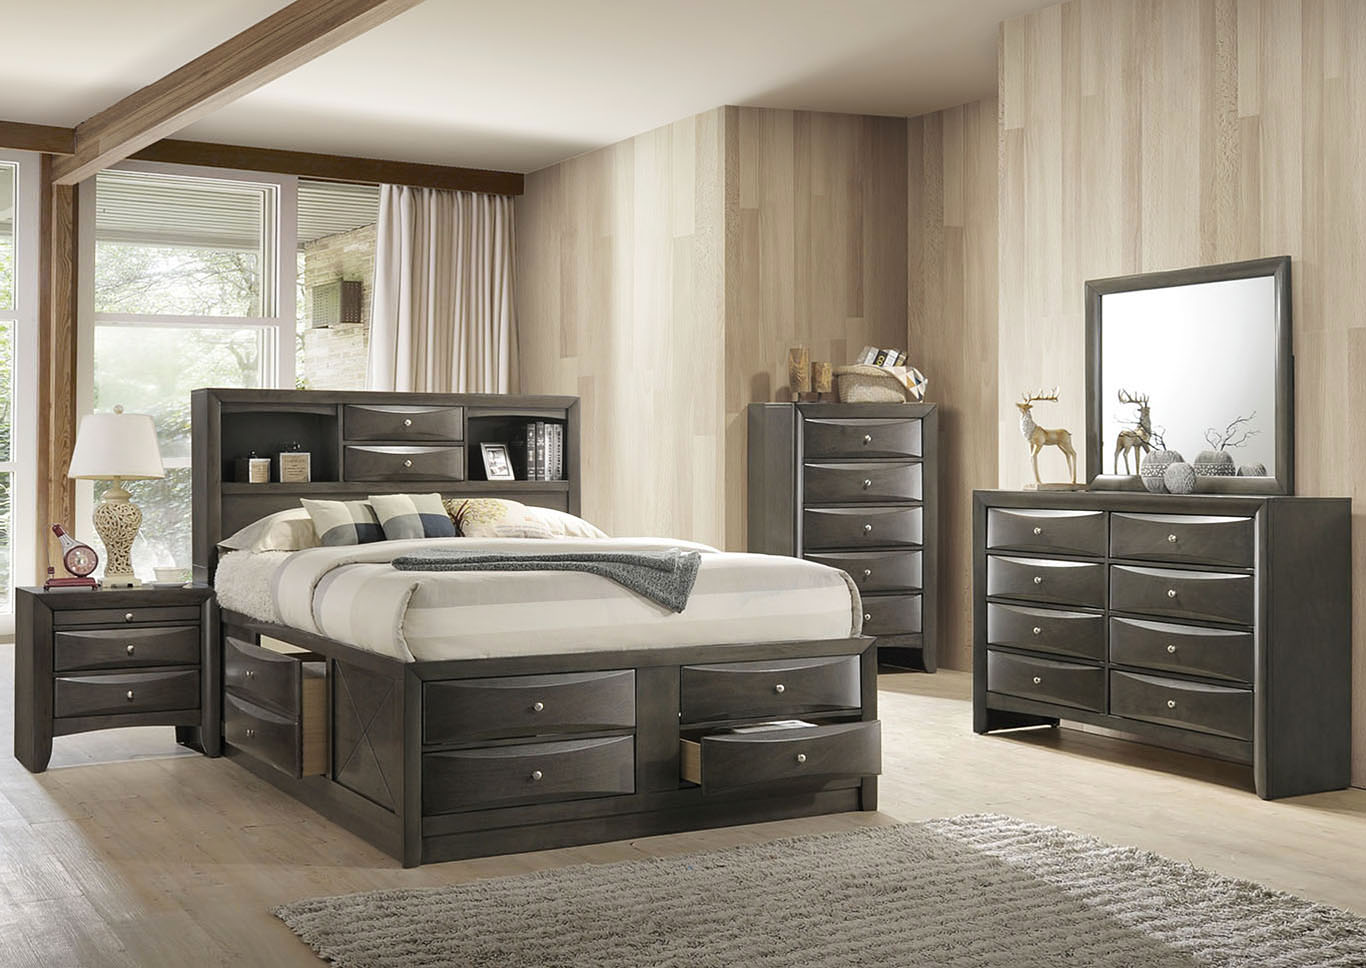 Ireland Gray Oak Full Bed,Acme